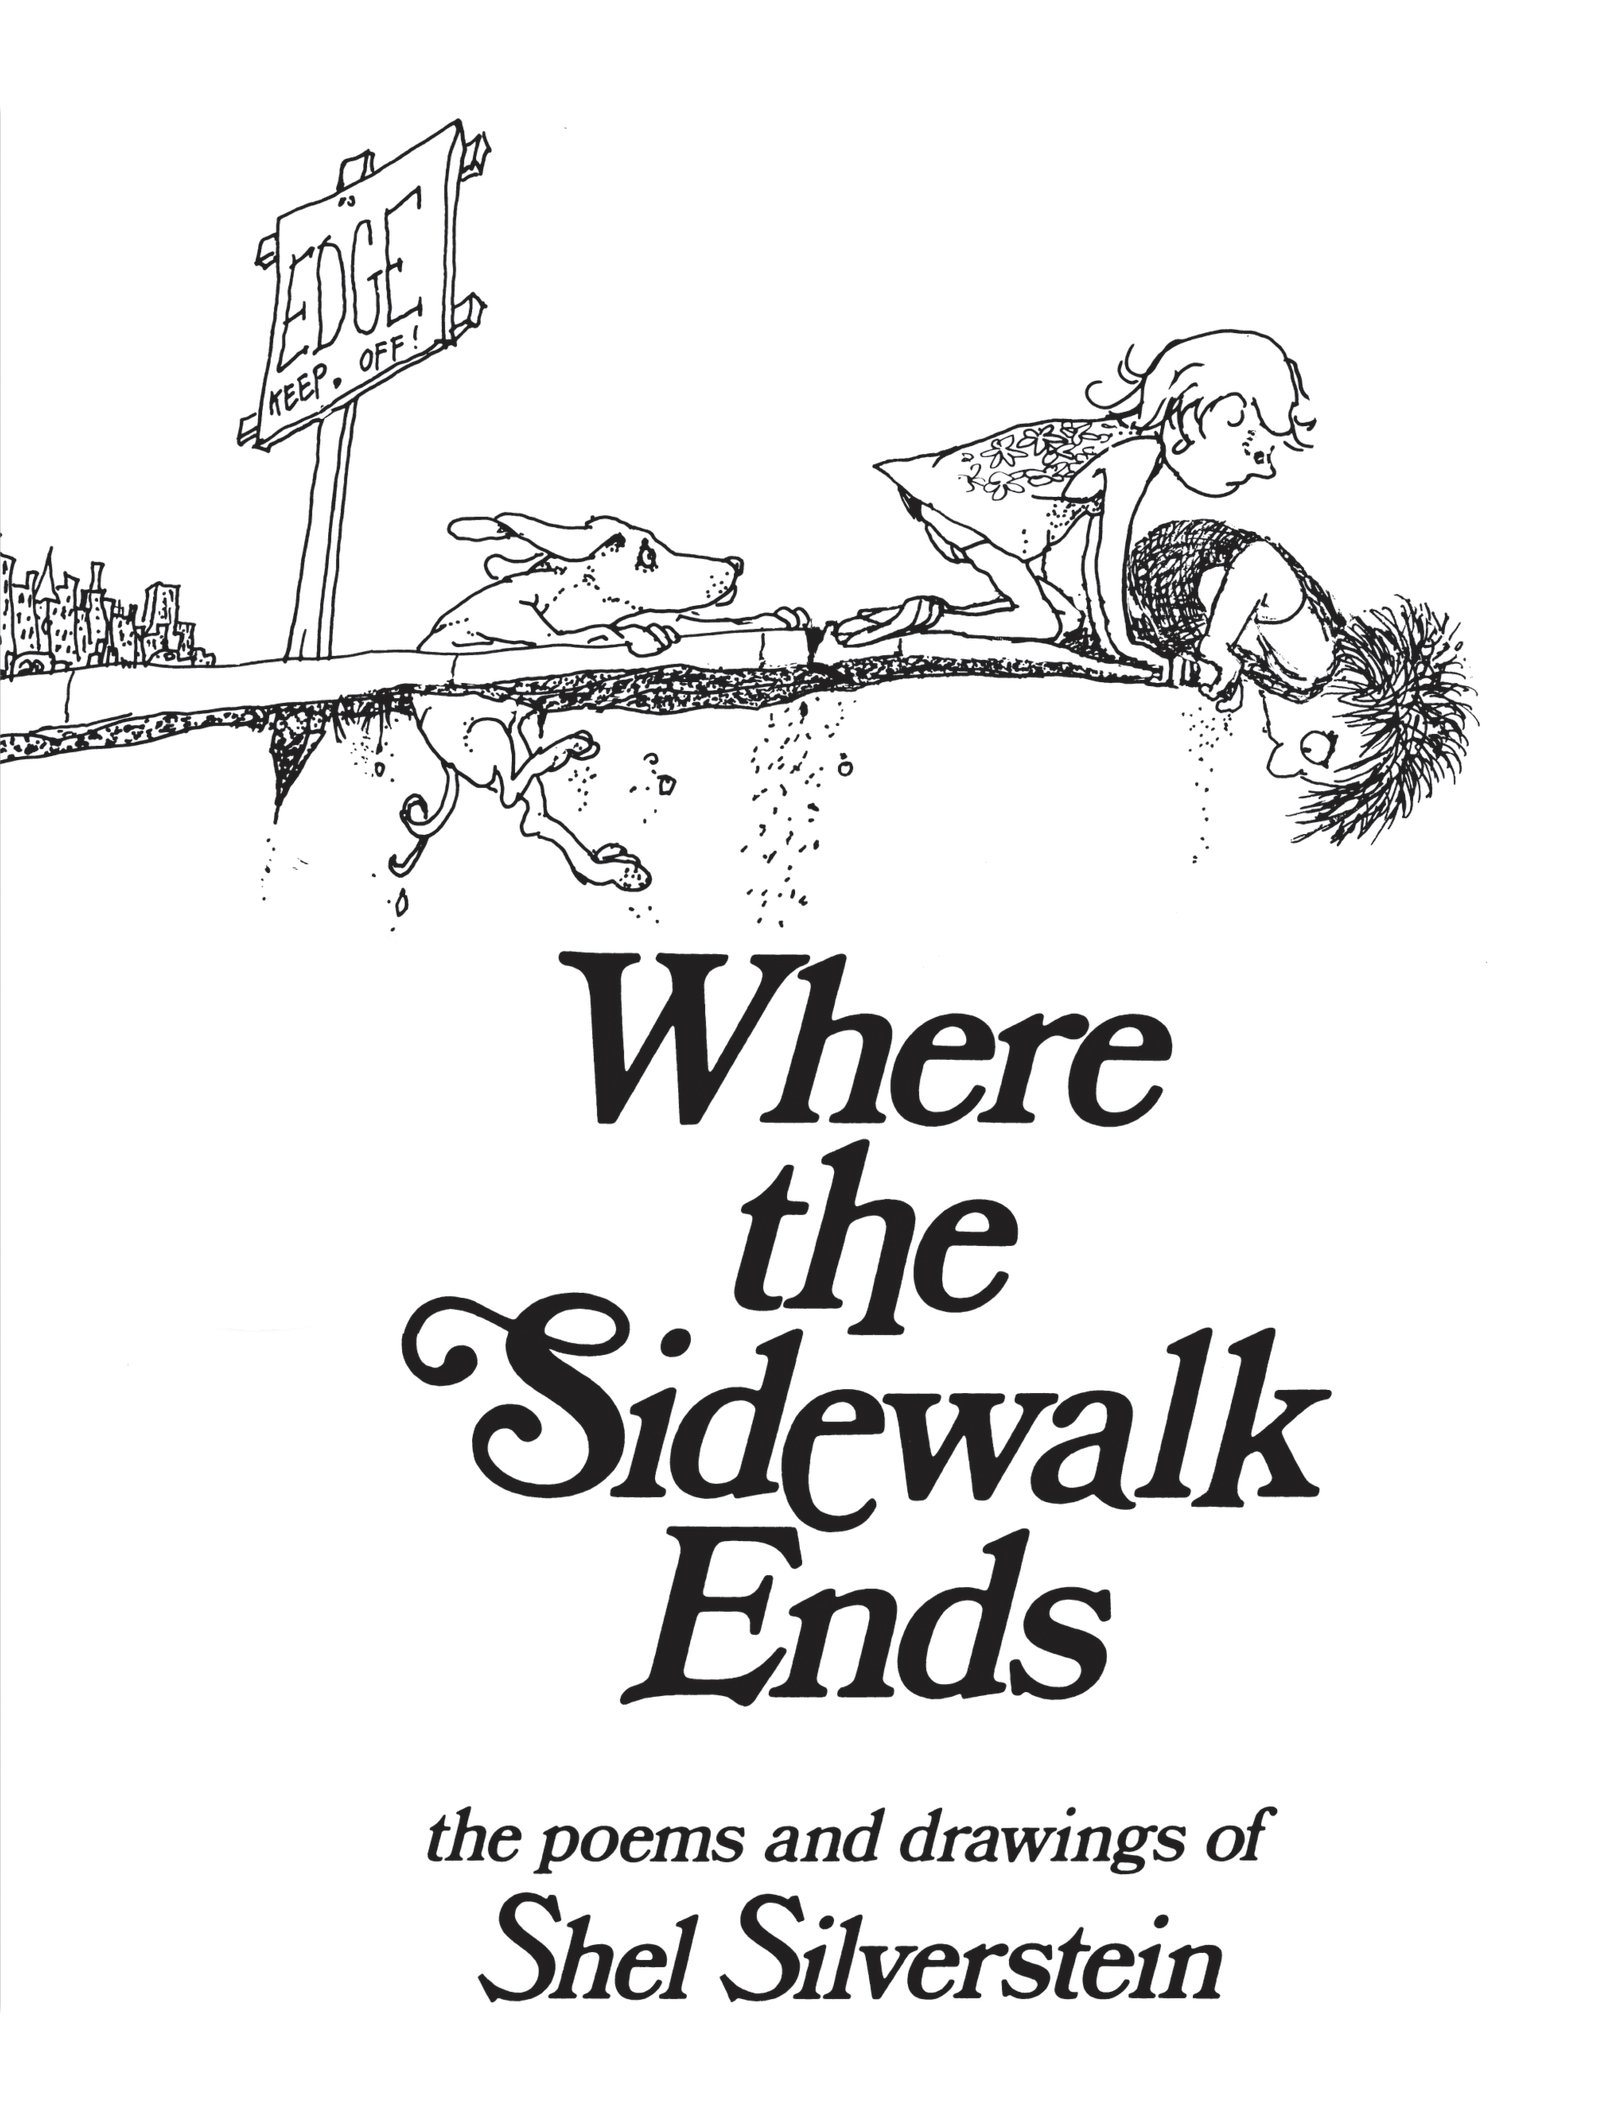 Where Sidewalk Ends Poems Drawings product image